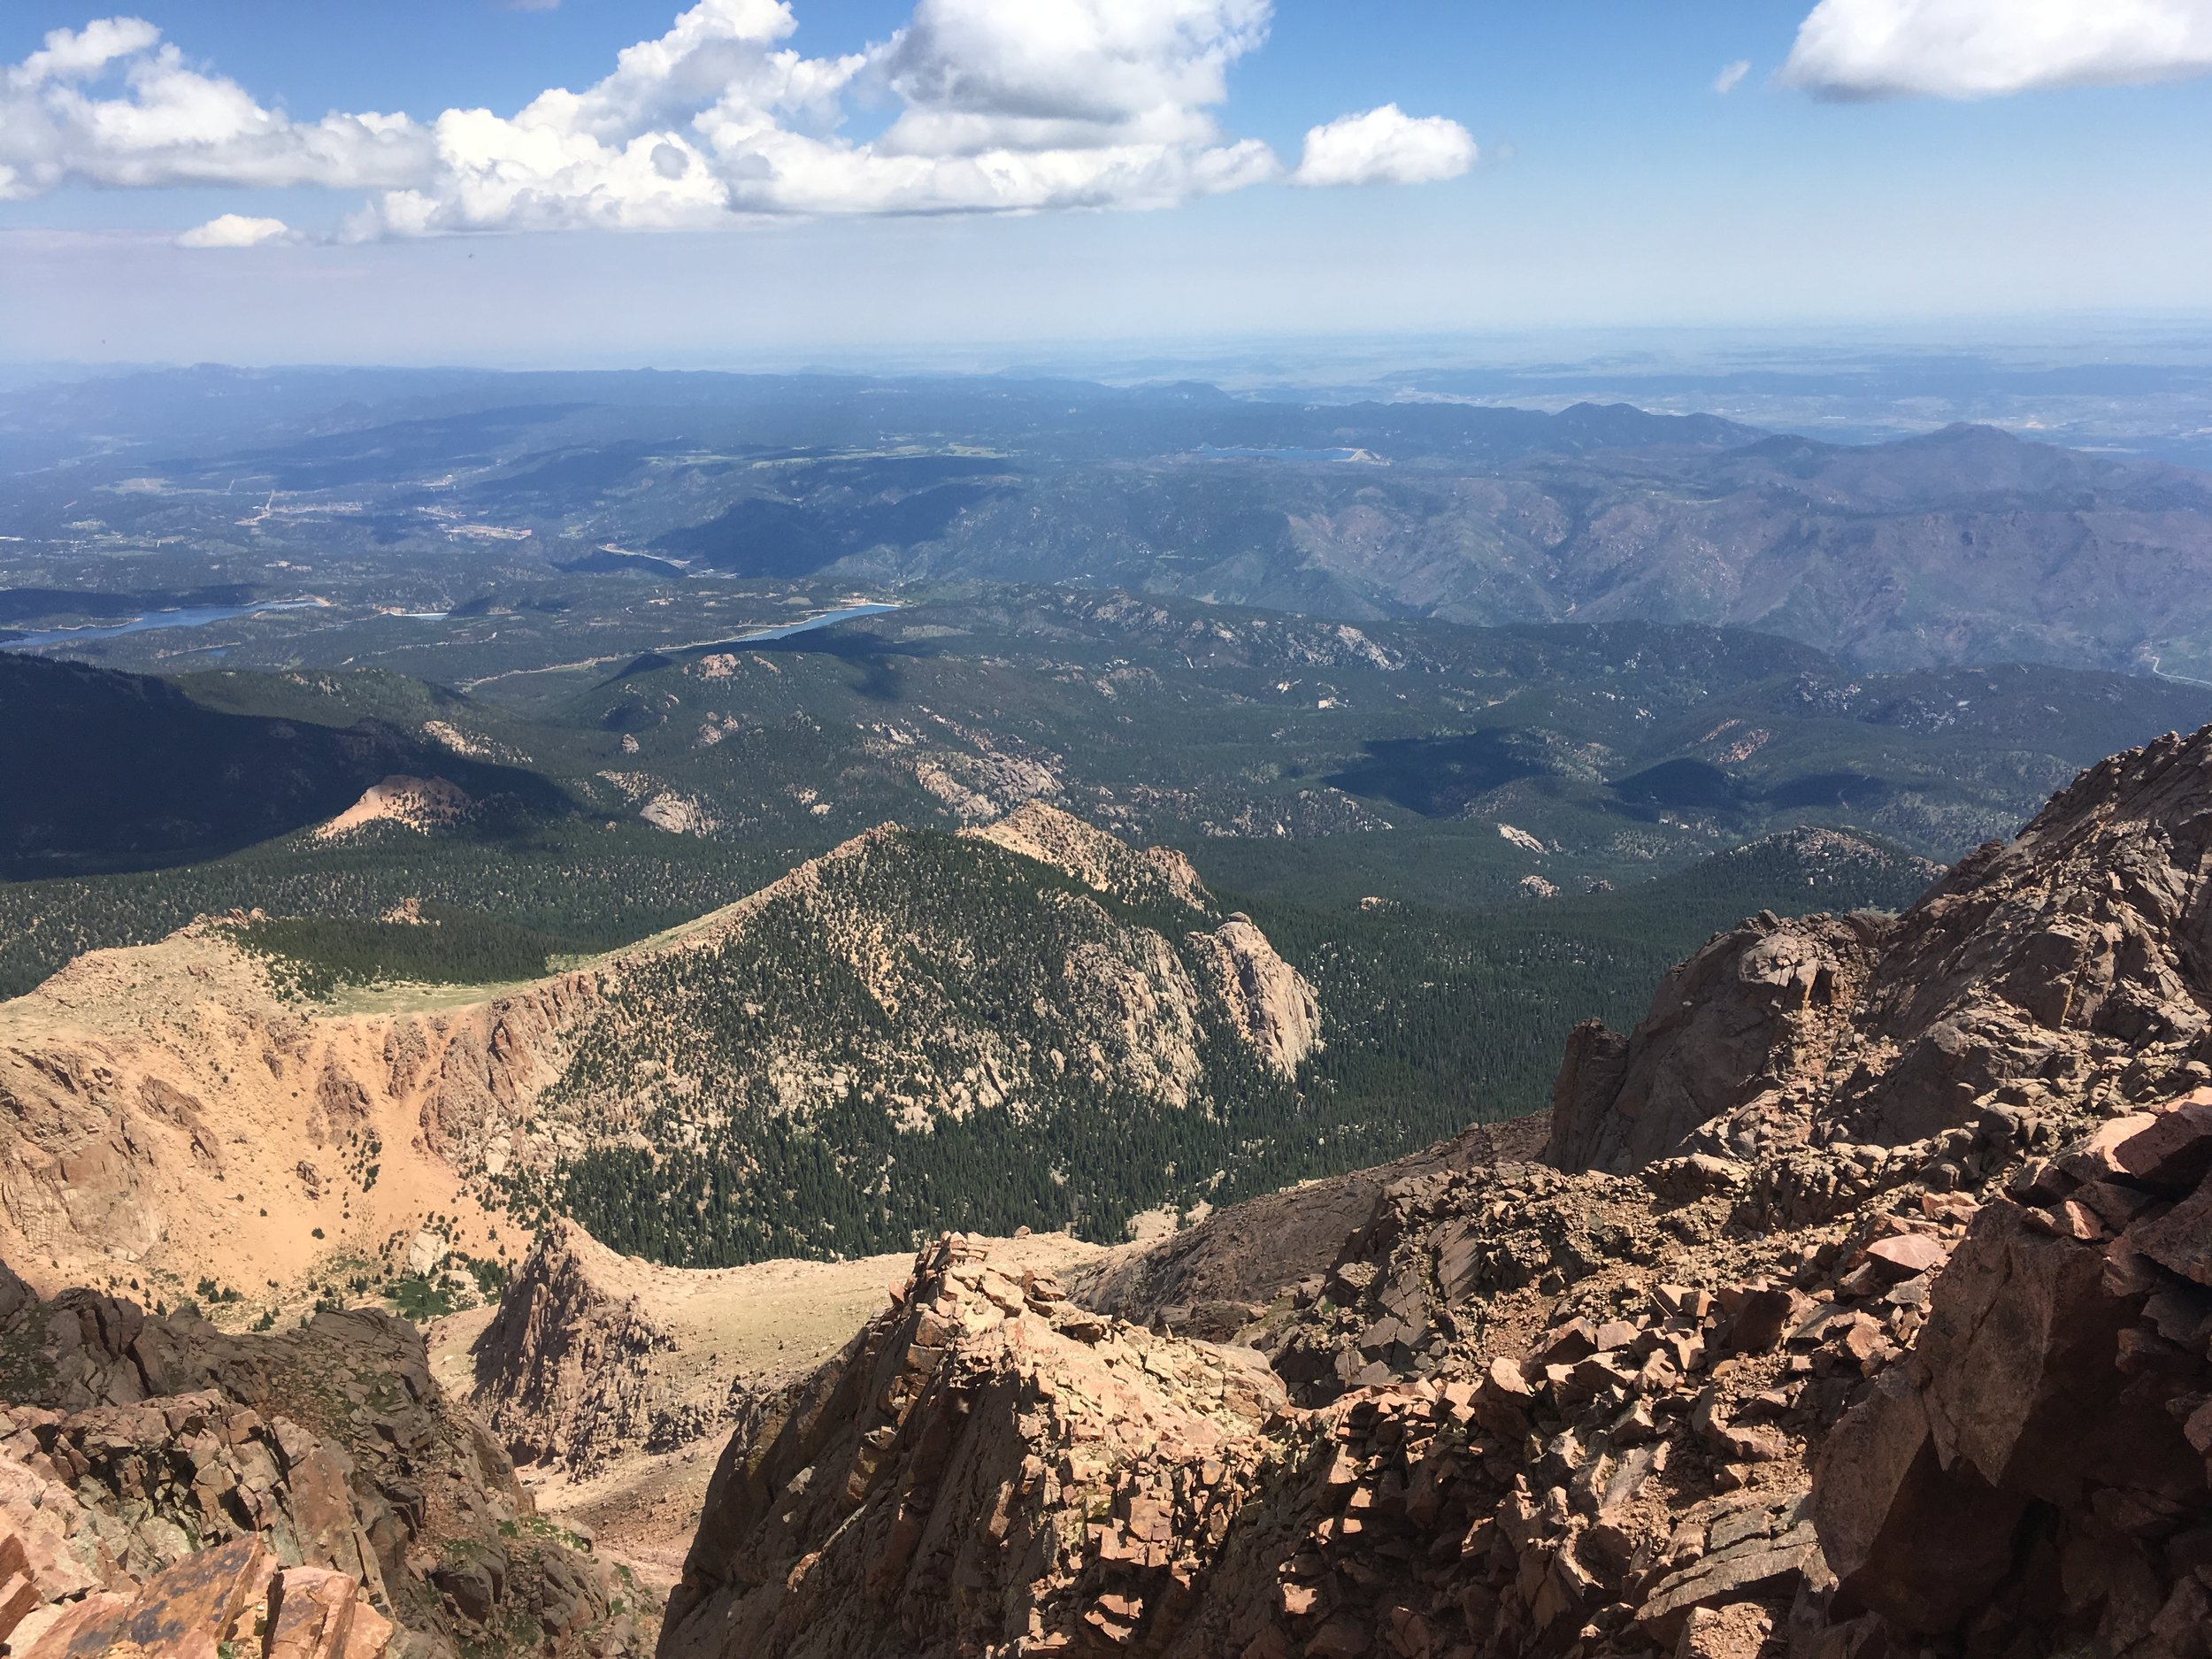 The view from my existential crisis: Pike's Peak.